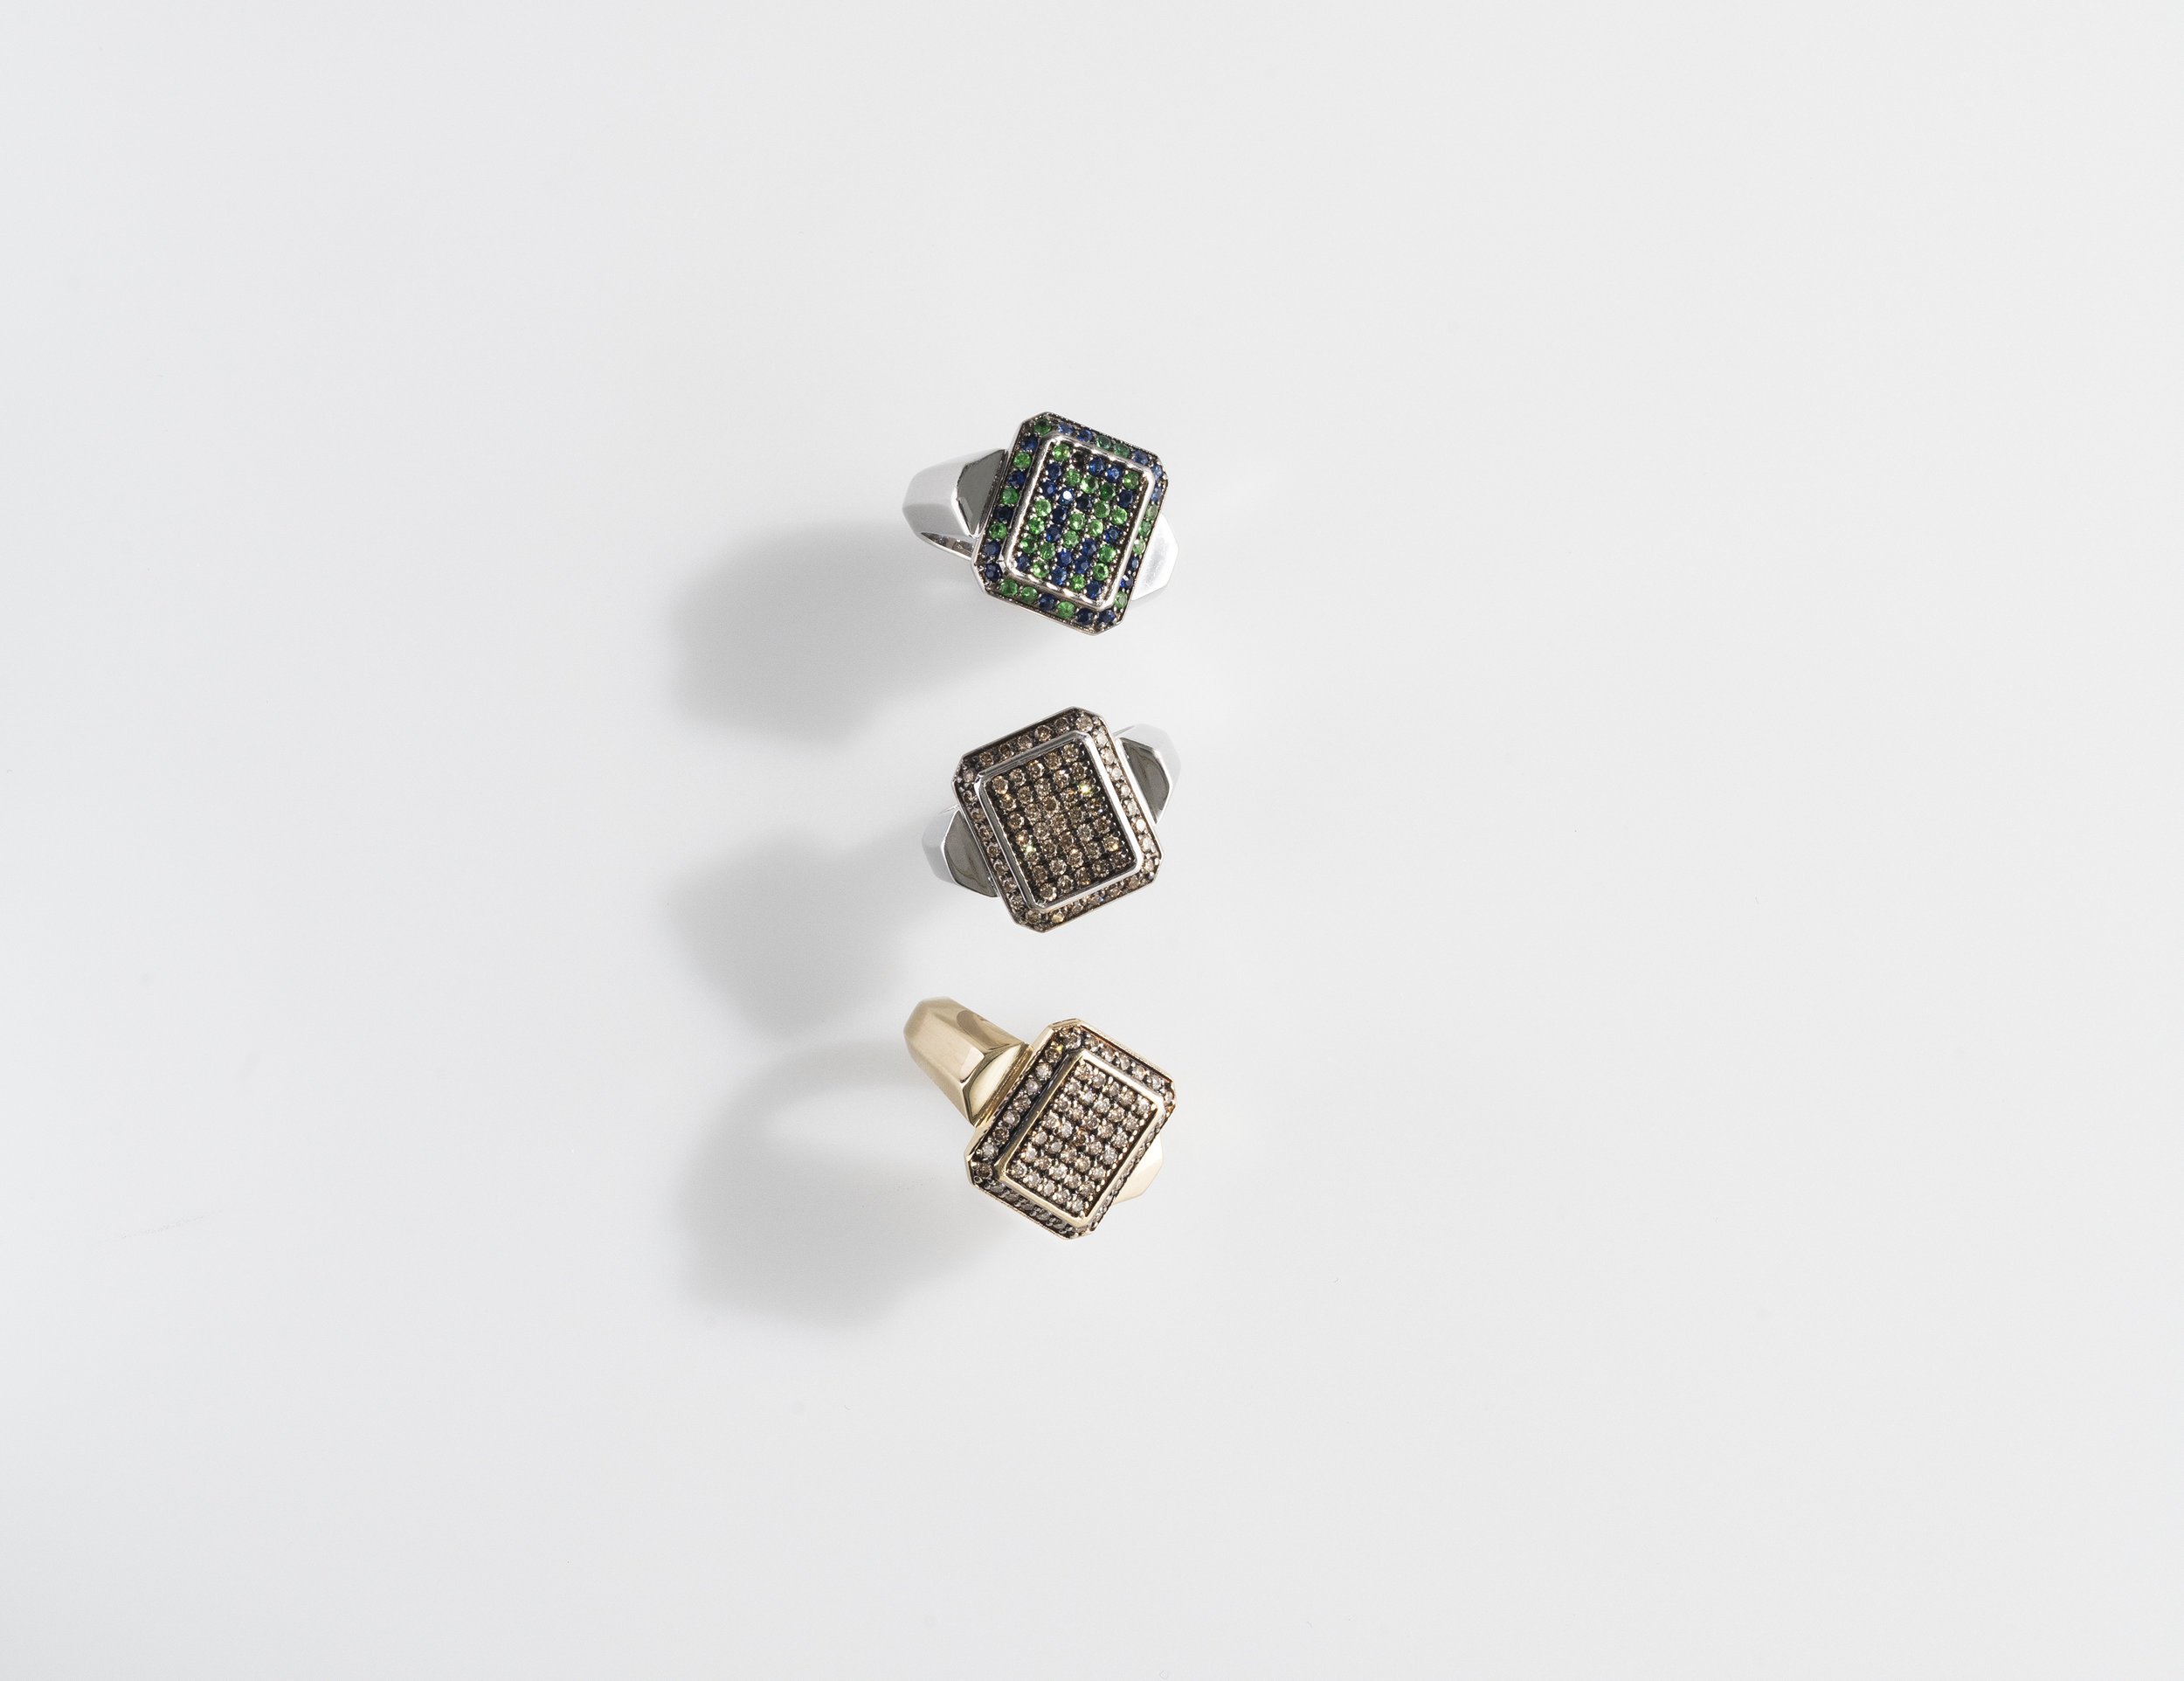 octagon pave rings.jpg